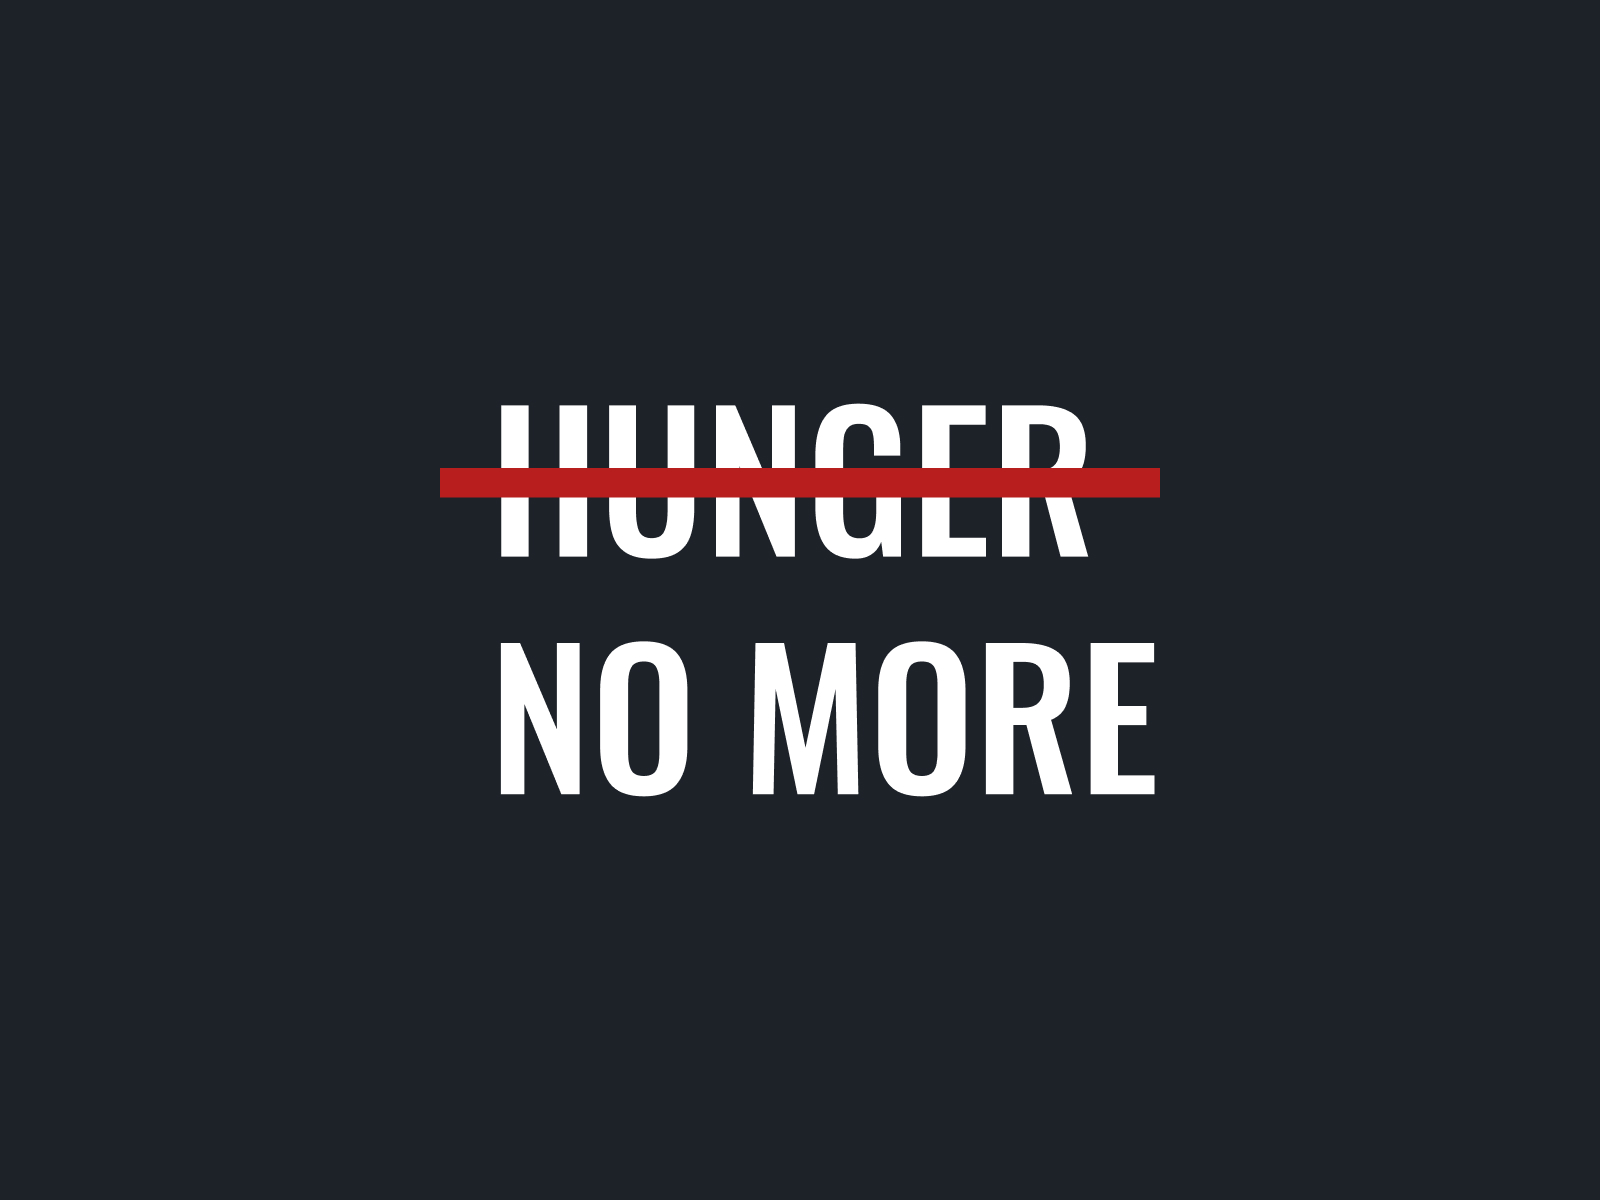 Hunger No More logo thumbnail.